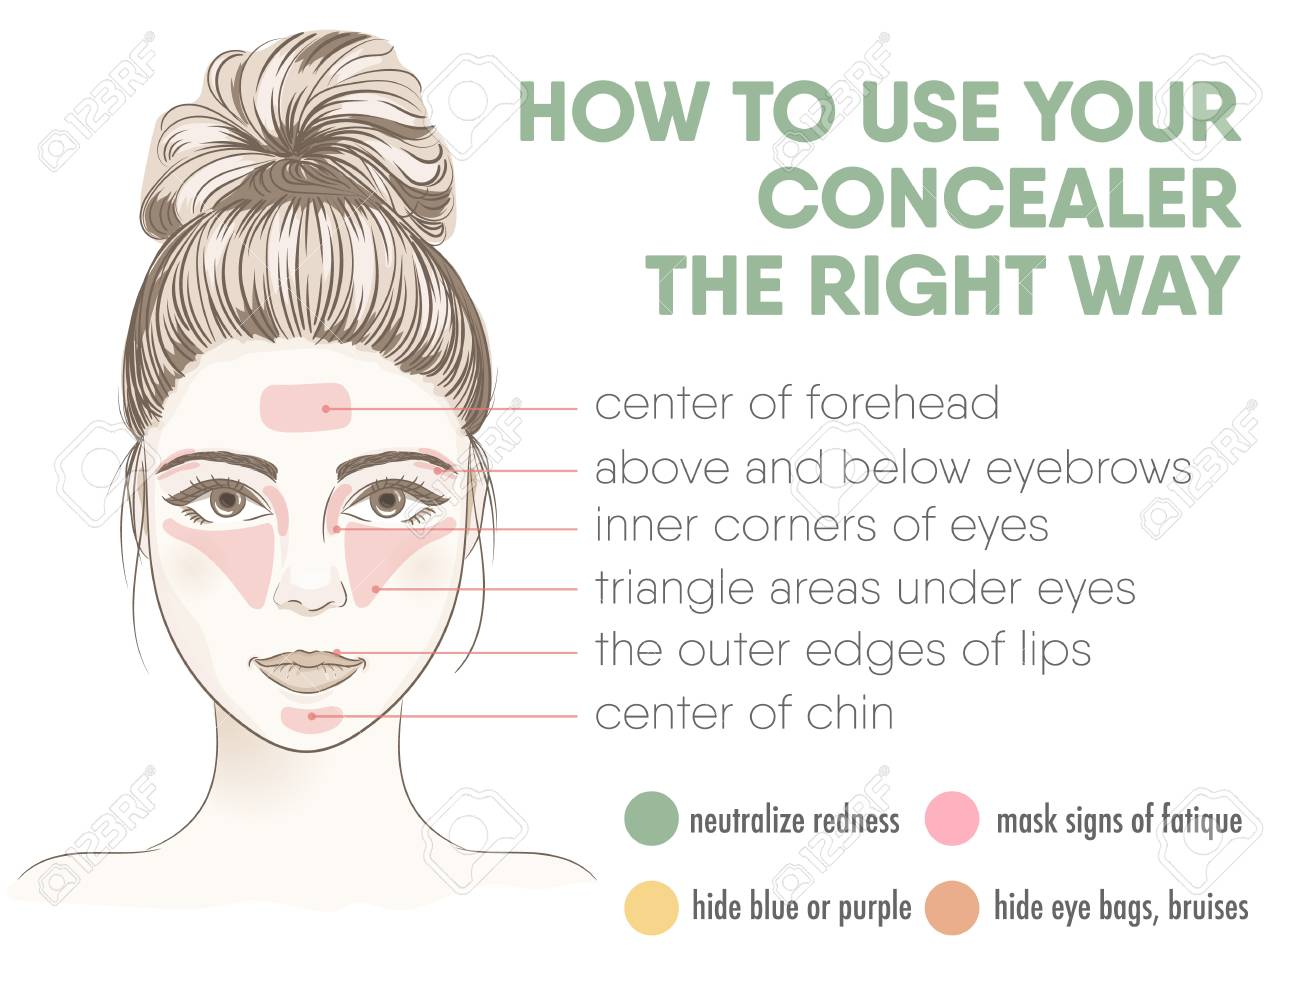 How to apply your concealer the right way infographic chart